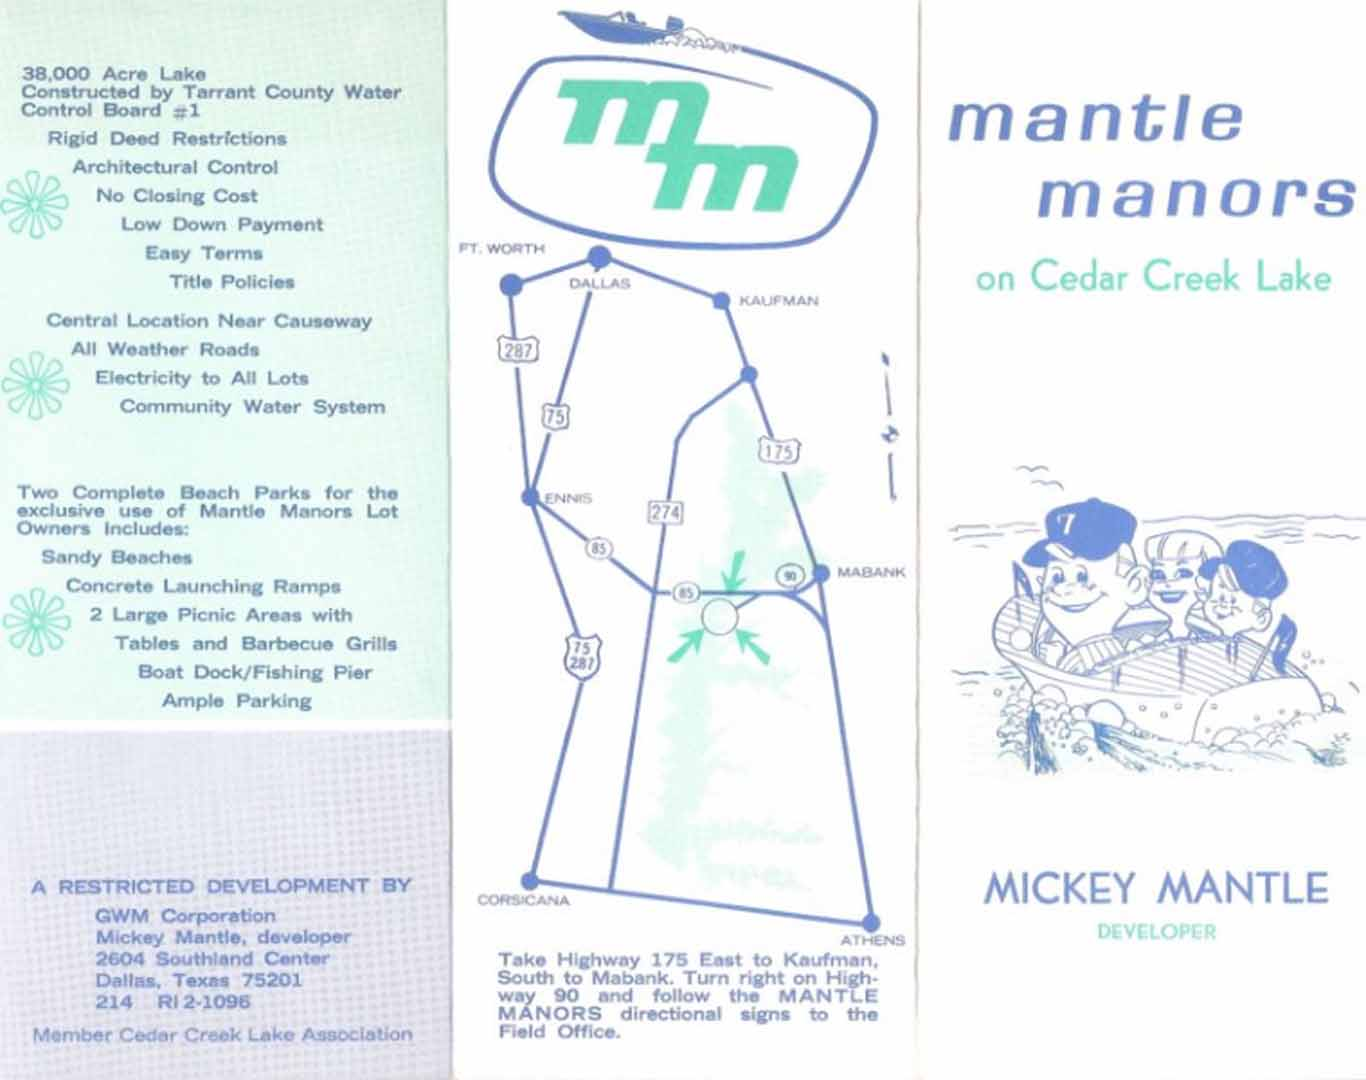 1969 mantle manors september